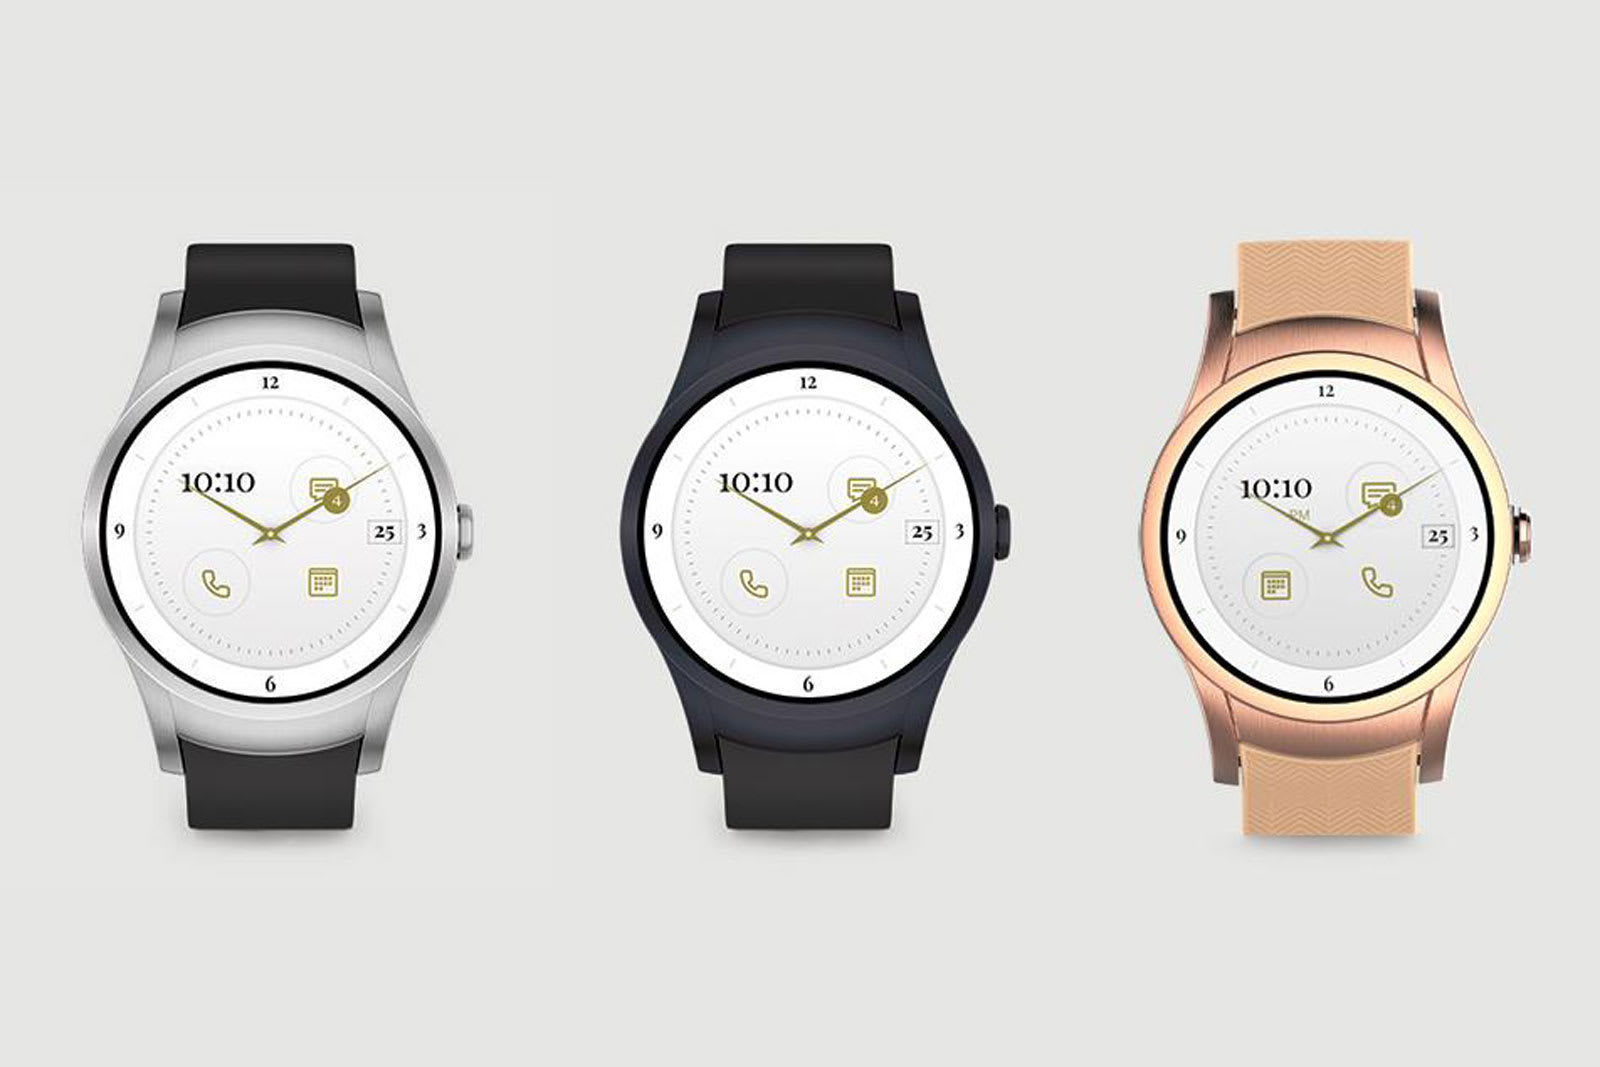 Android Wear verizon gives up on its android wear watch after 4 months